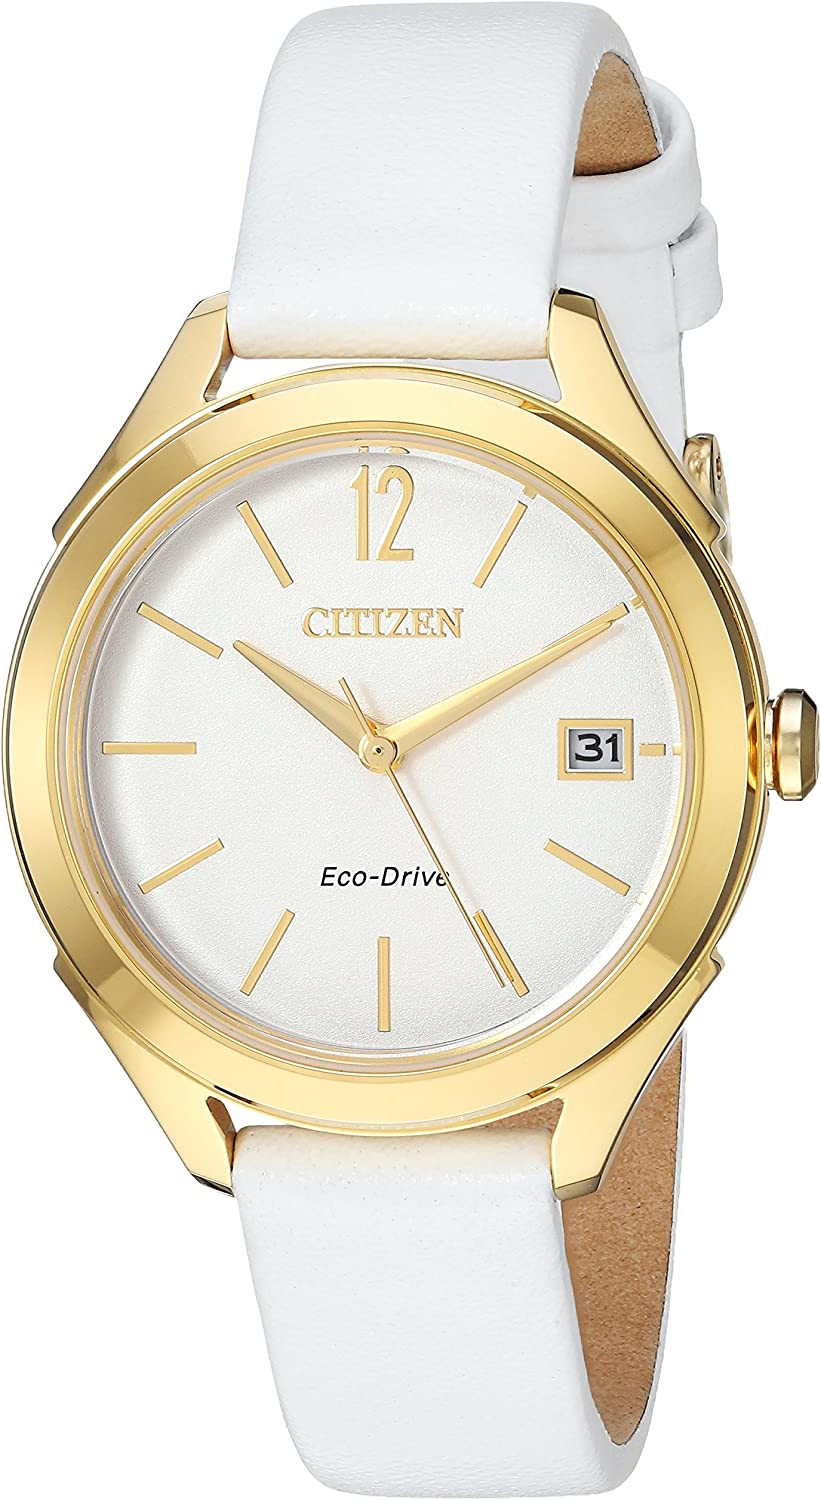 Citizen Women s Drive Stainless Steel Japanese-Quartz Watch with Leather Calfskin Strap, White, 14 Model FE6142-08A